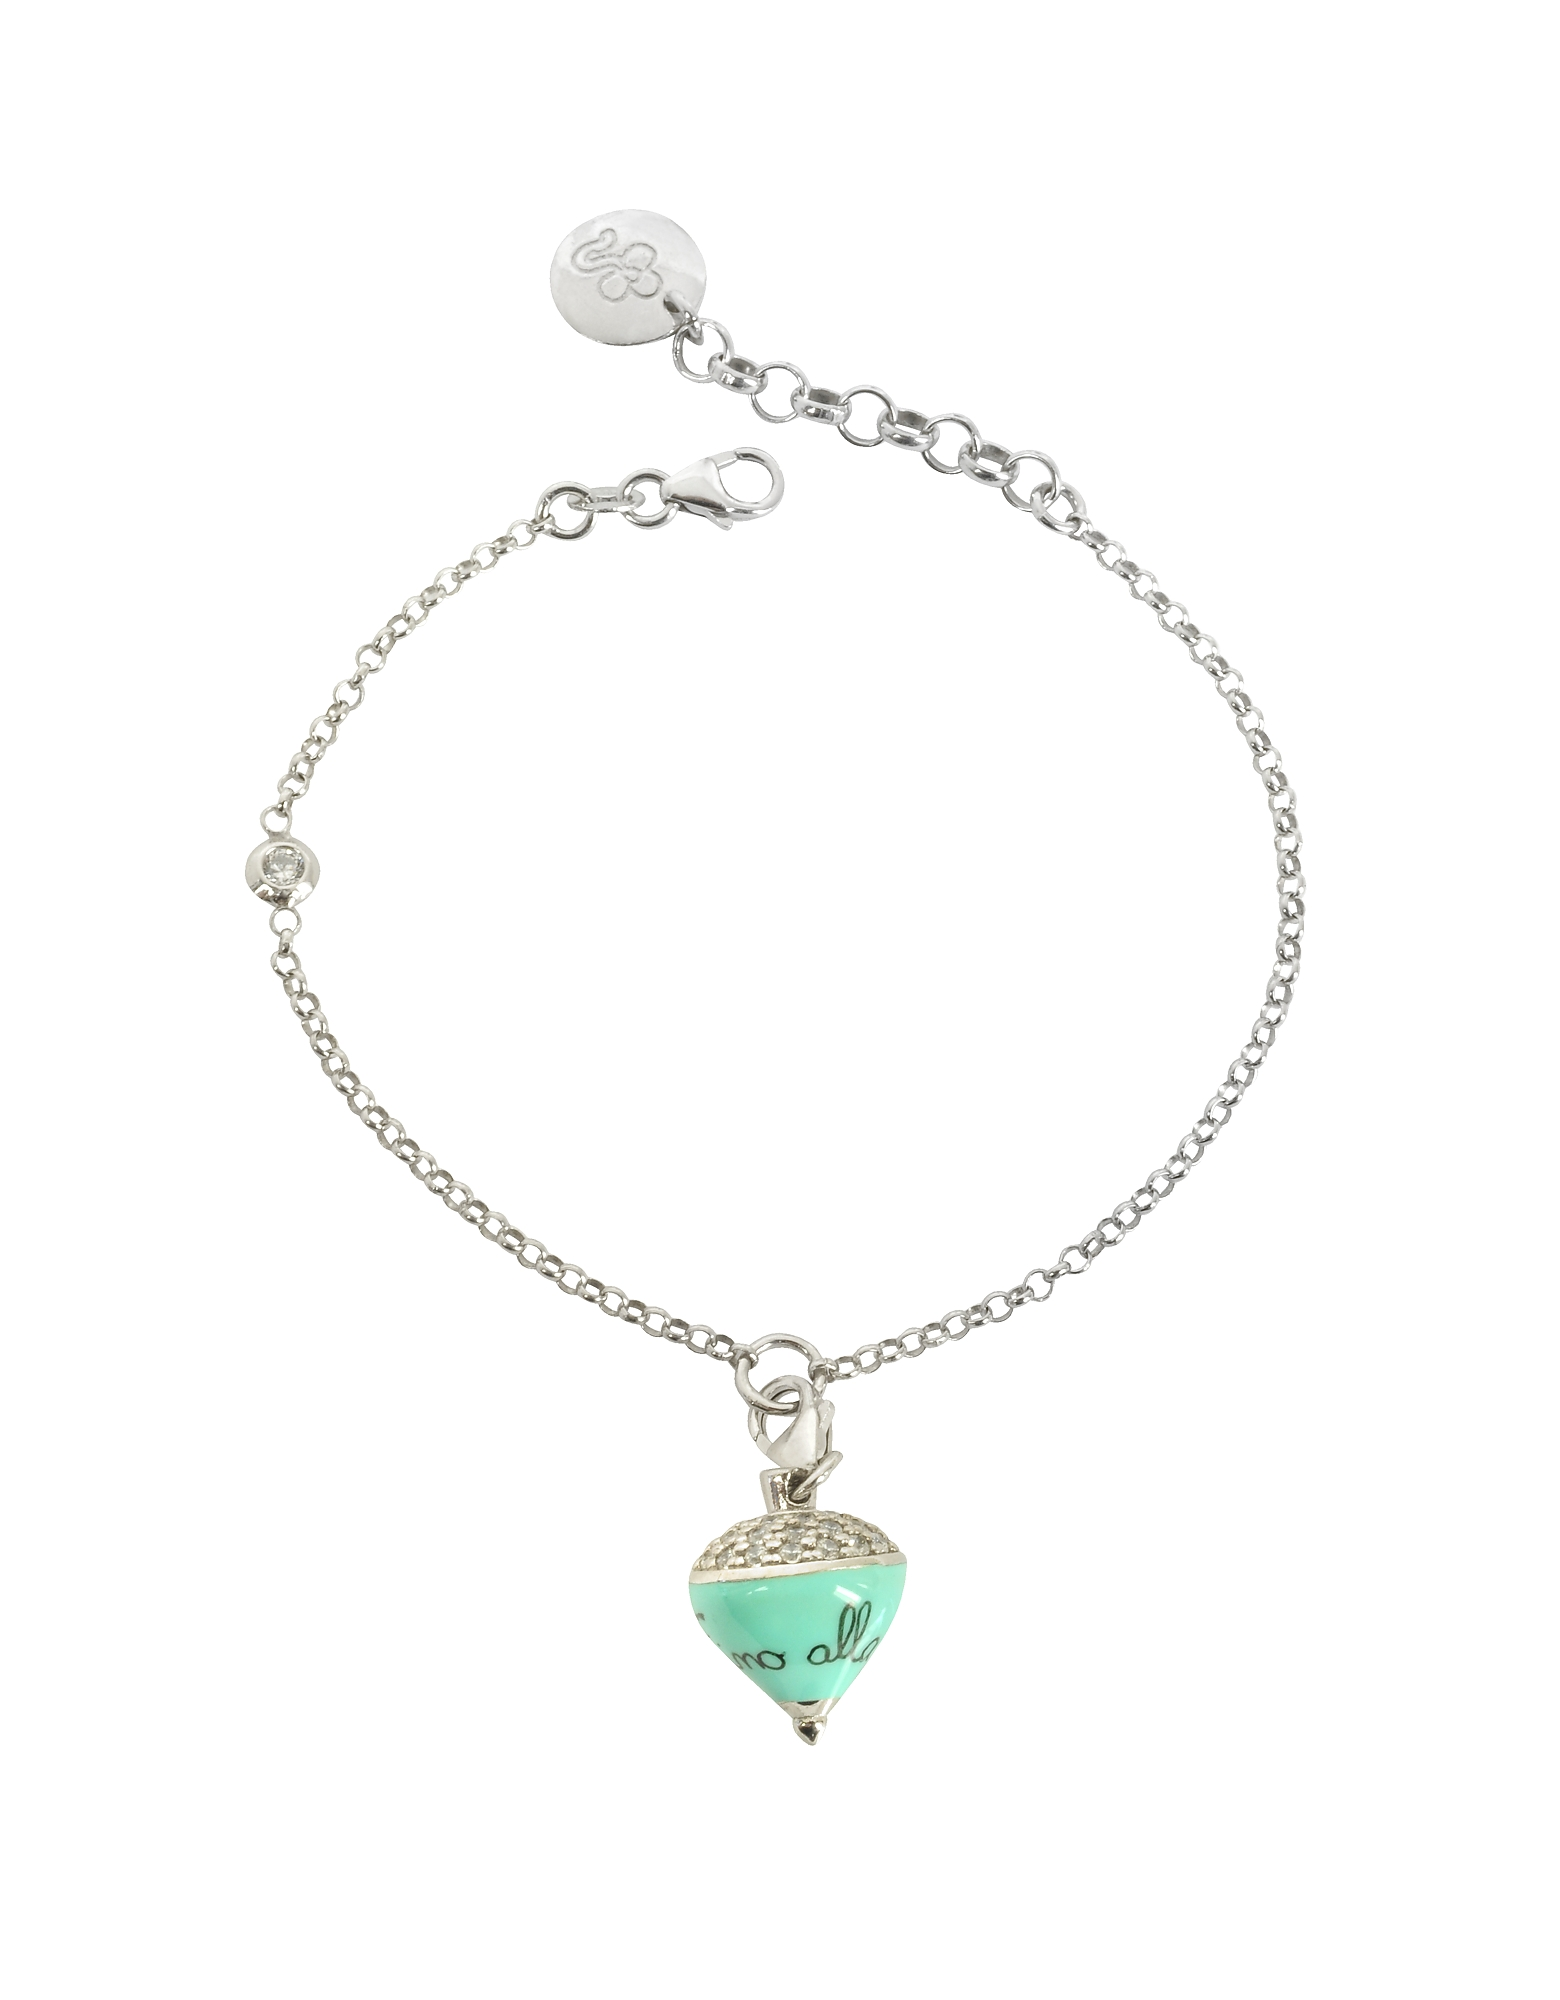 Sterling Silver and Aqua Enamel Small Spinning Top Charm Bracelet w/Cubic Zirconia